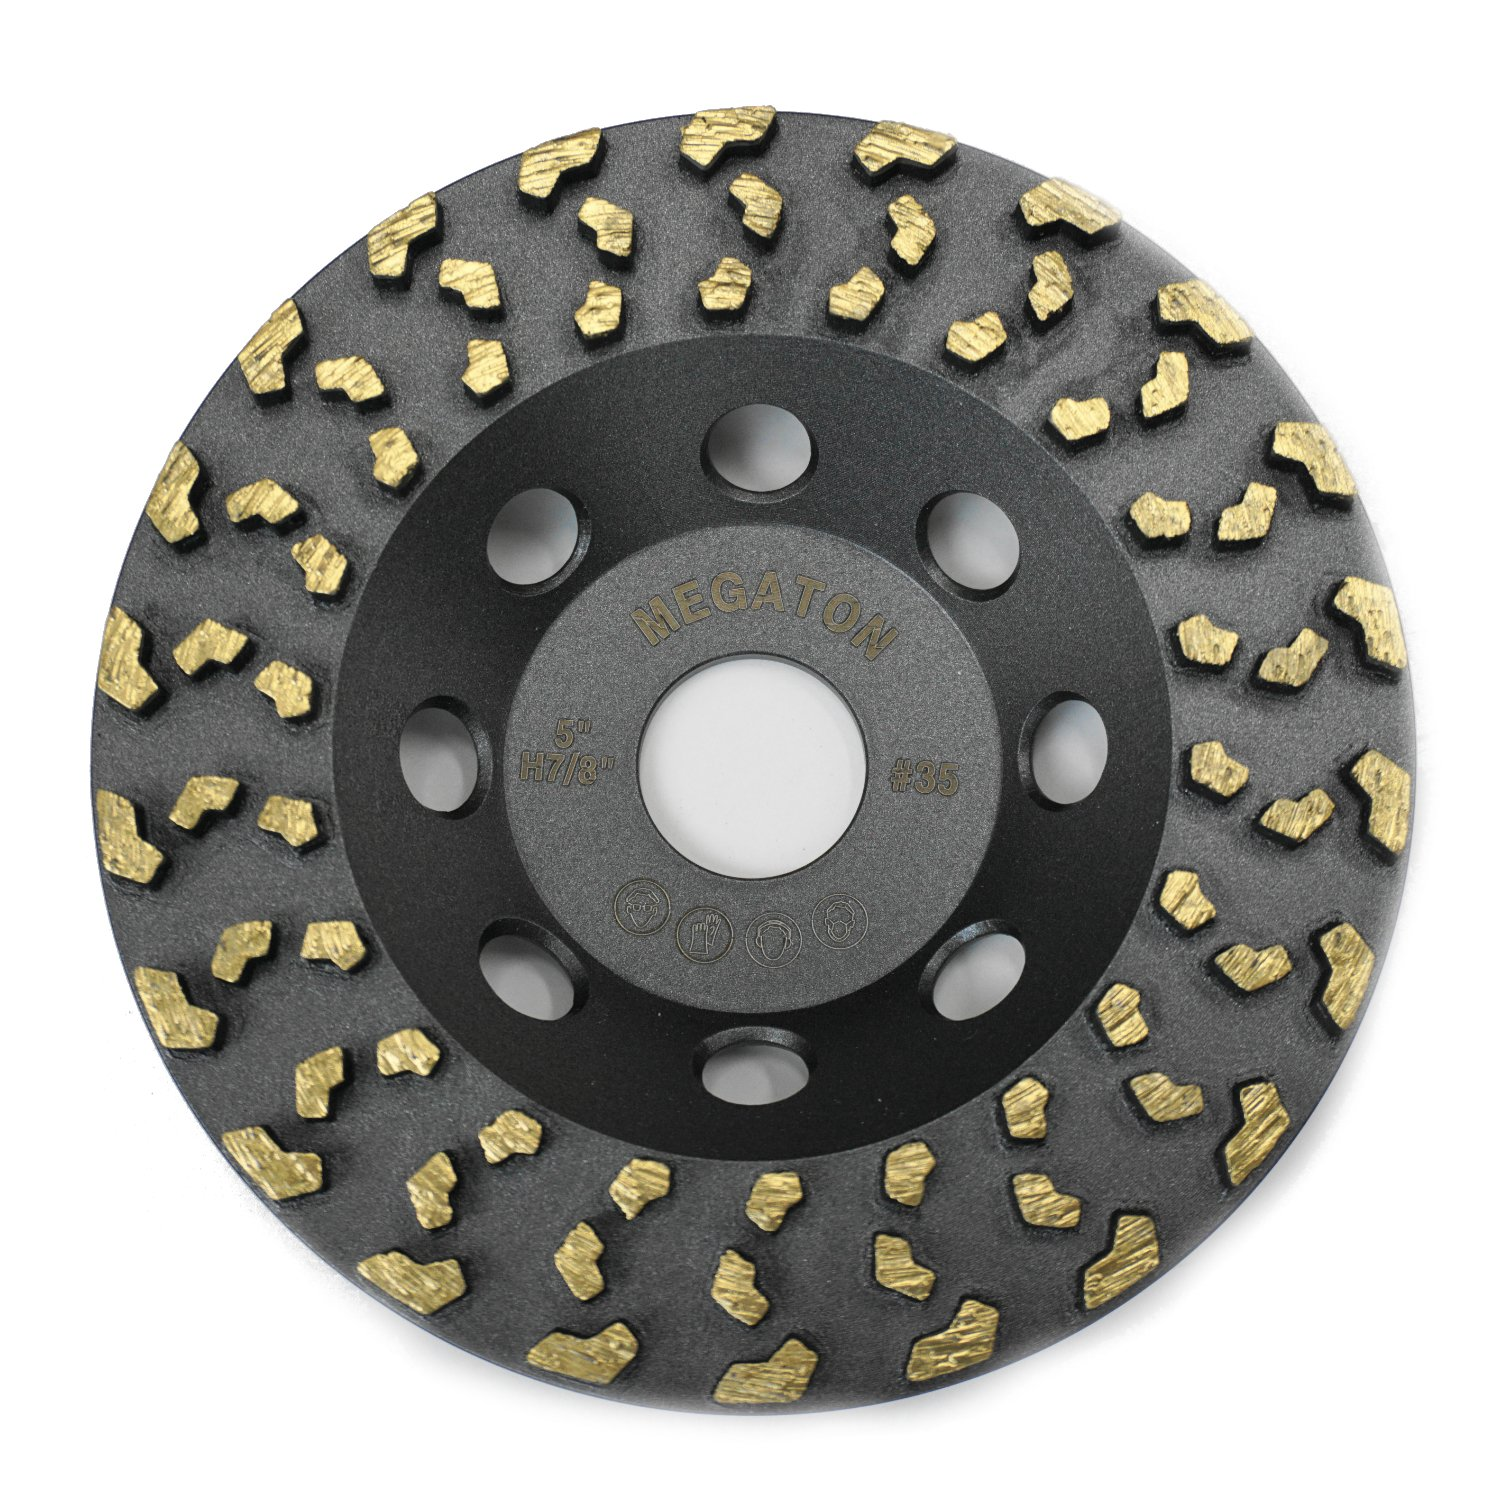 Megatron 5'' Diamond Cup Grinding Removing Disc Wheel for Any Concrete, Paint, Epoxy, Glue and Mastic with CDB Newest Technology (Megatron 5'')